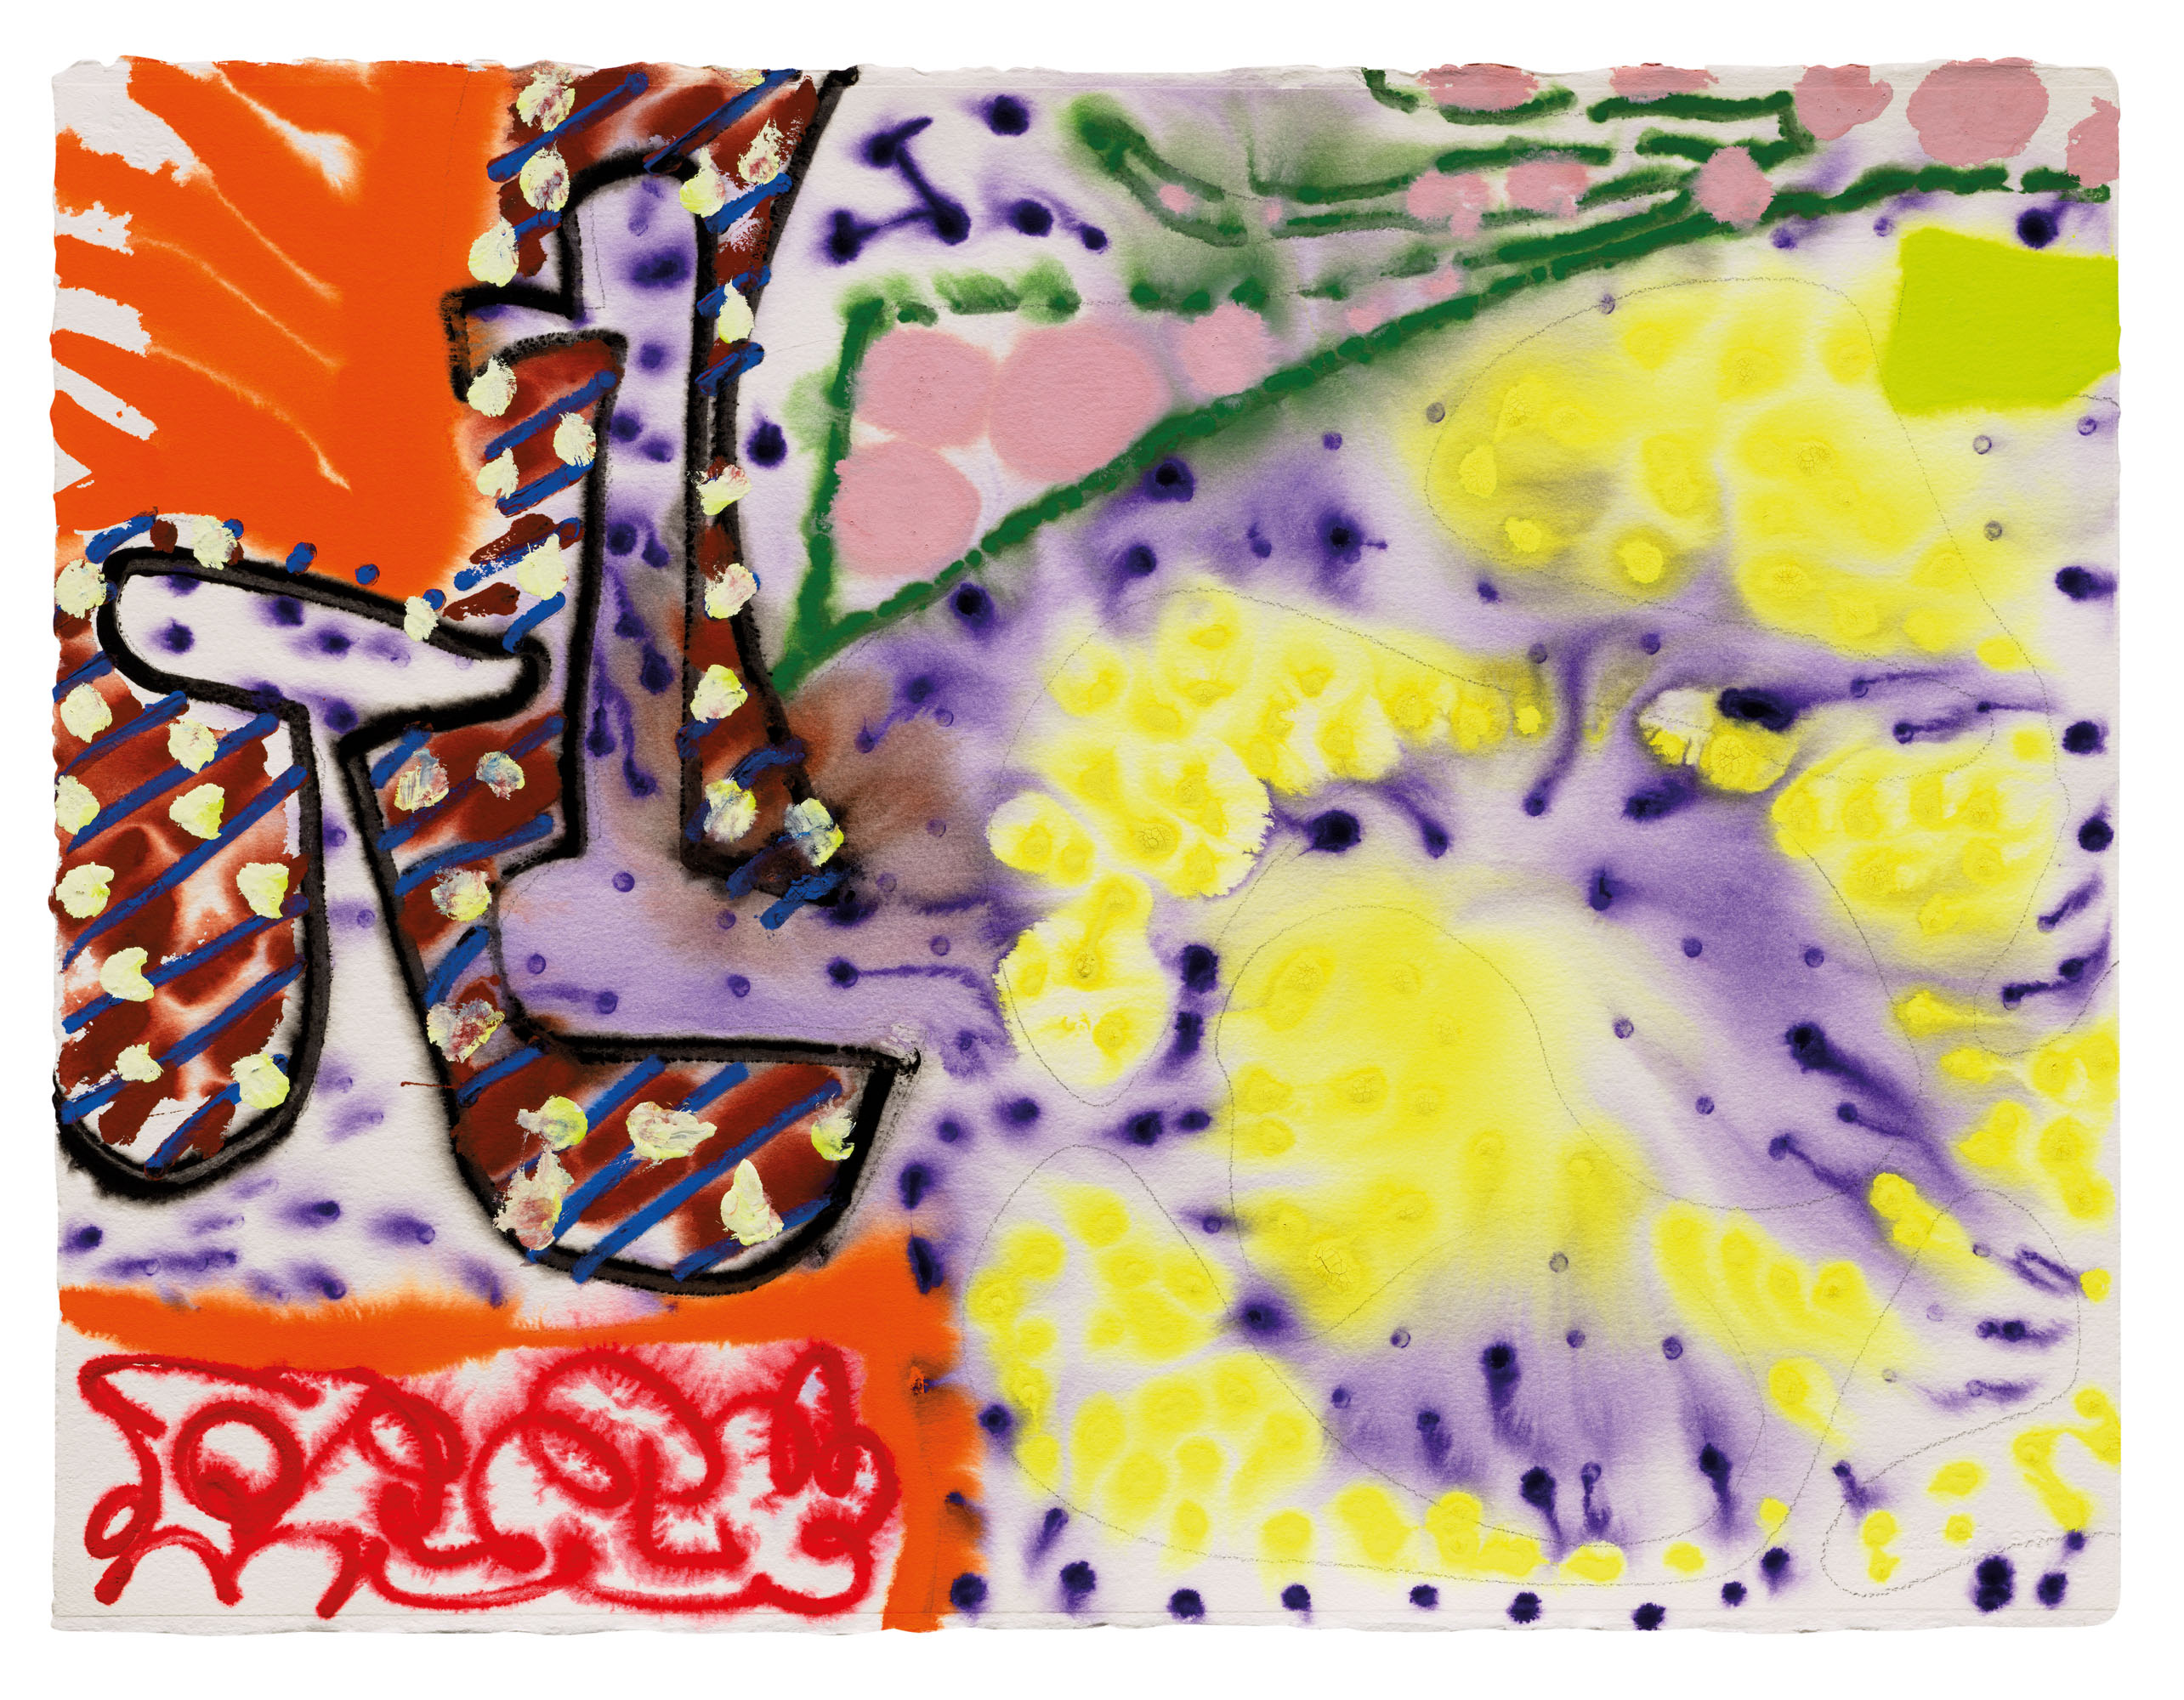 Patrick Heron (1920-1999),Sydney 21 December, 1989. Charcoal and gouache on paper. 22¾ x 29⅞ in (57.8 x 76 cm). Estimate £10,000-15,000. Offered inModern British Art Day Sale, 2 March at Christie's London